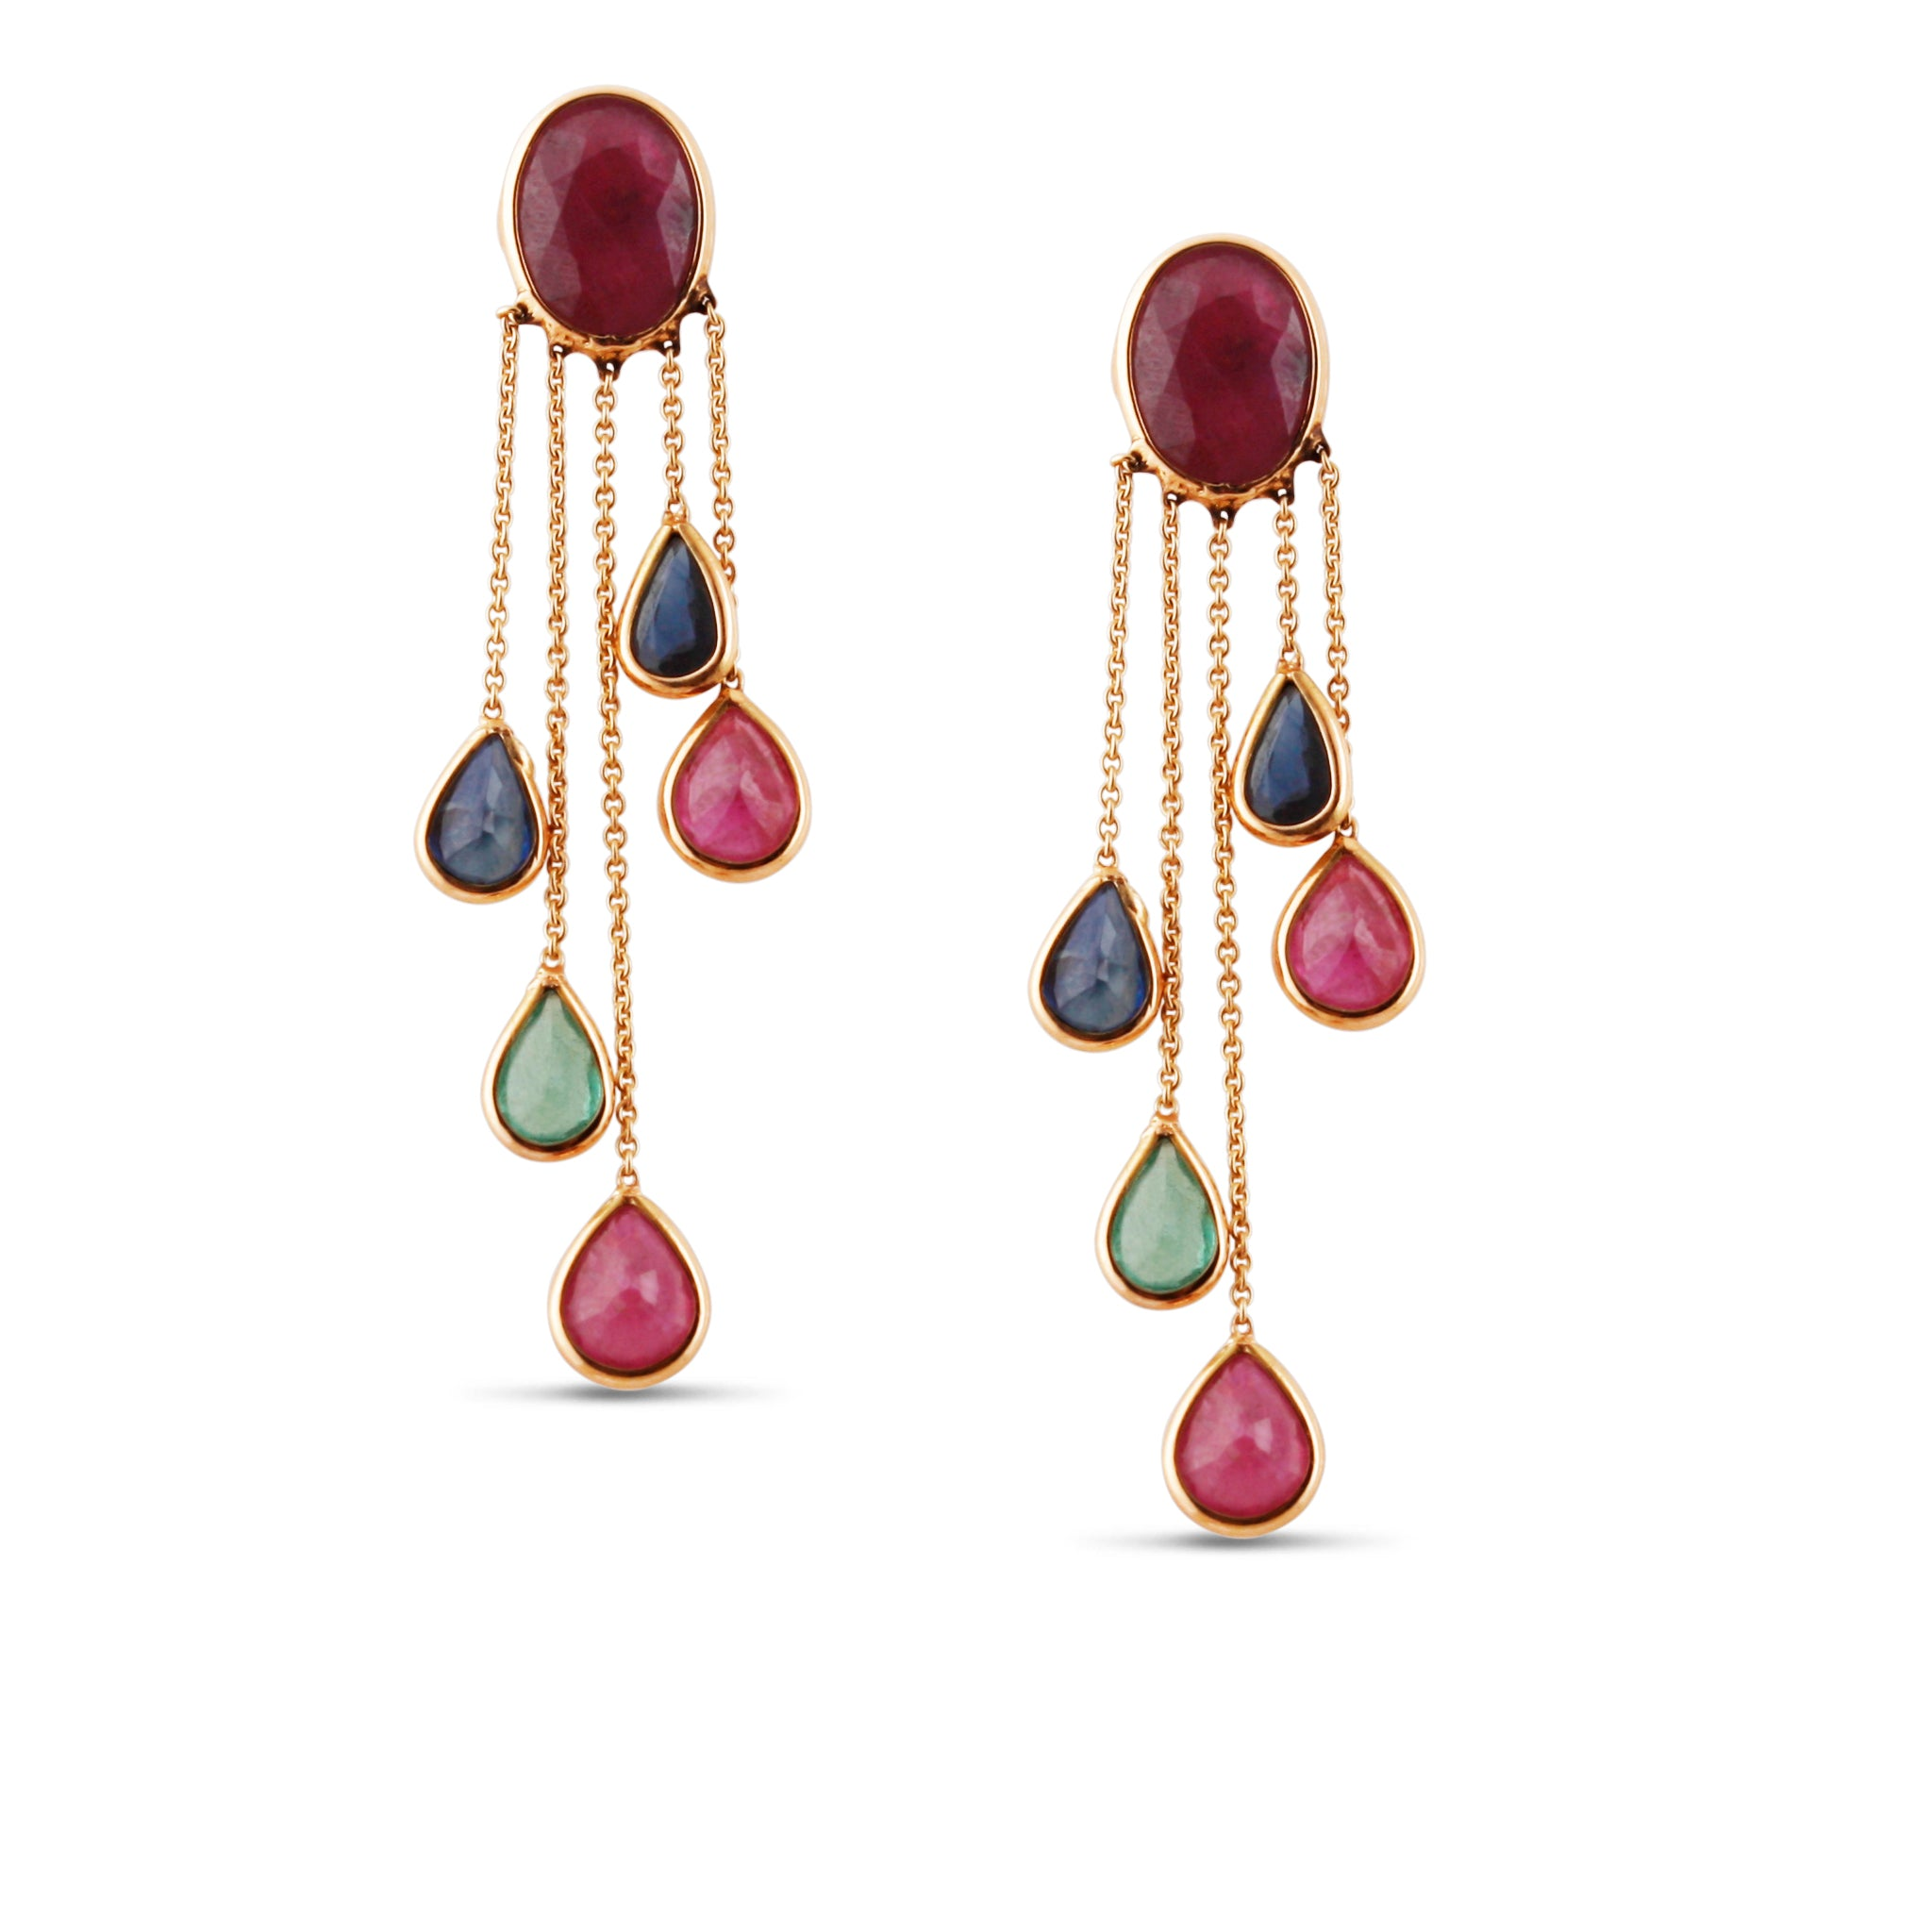 Emerald, Ruby and Sapphire Rainbow Earrings in 18k Yellow Gold